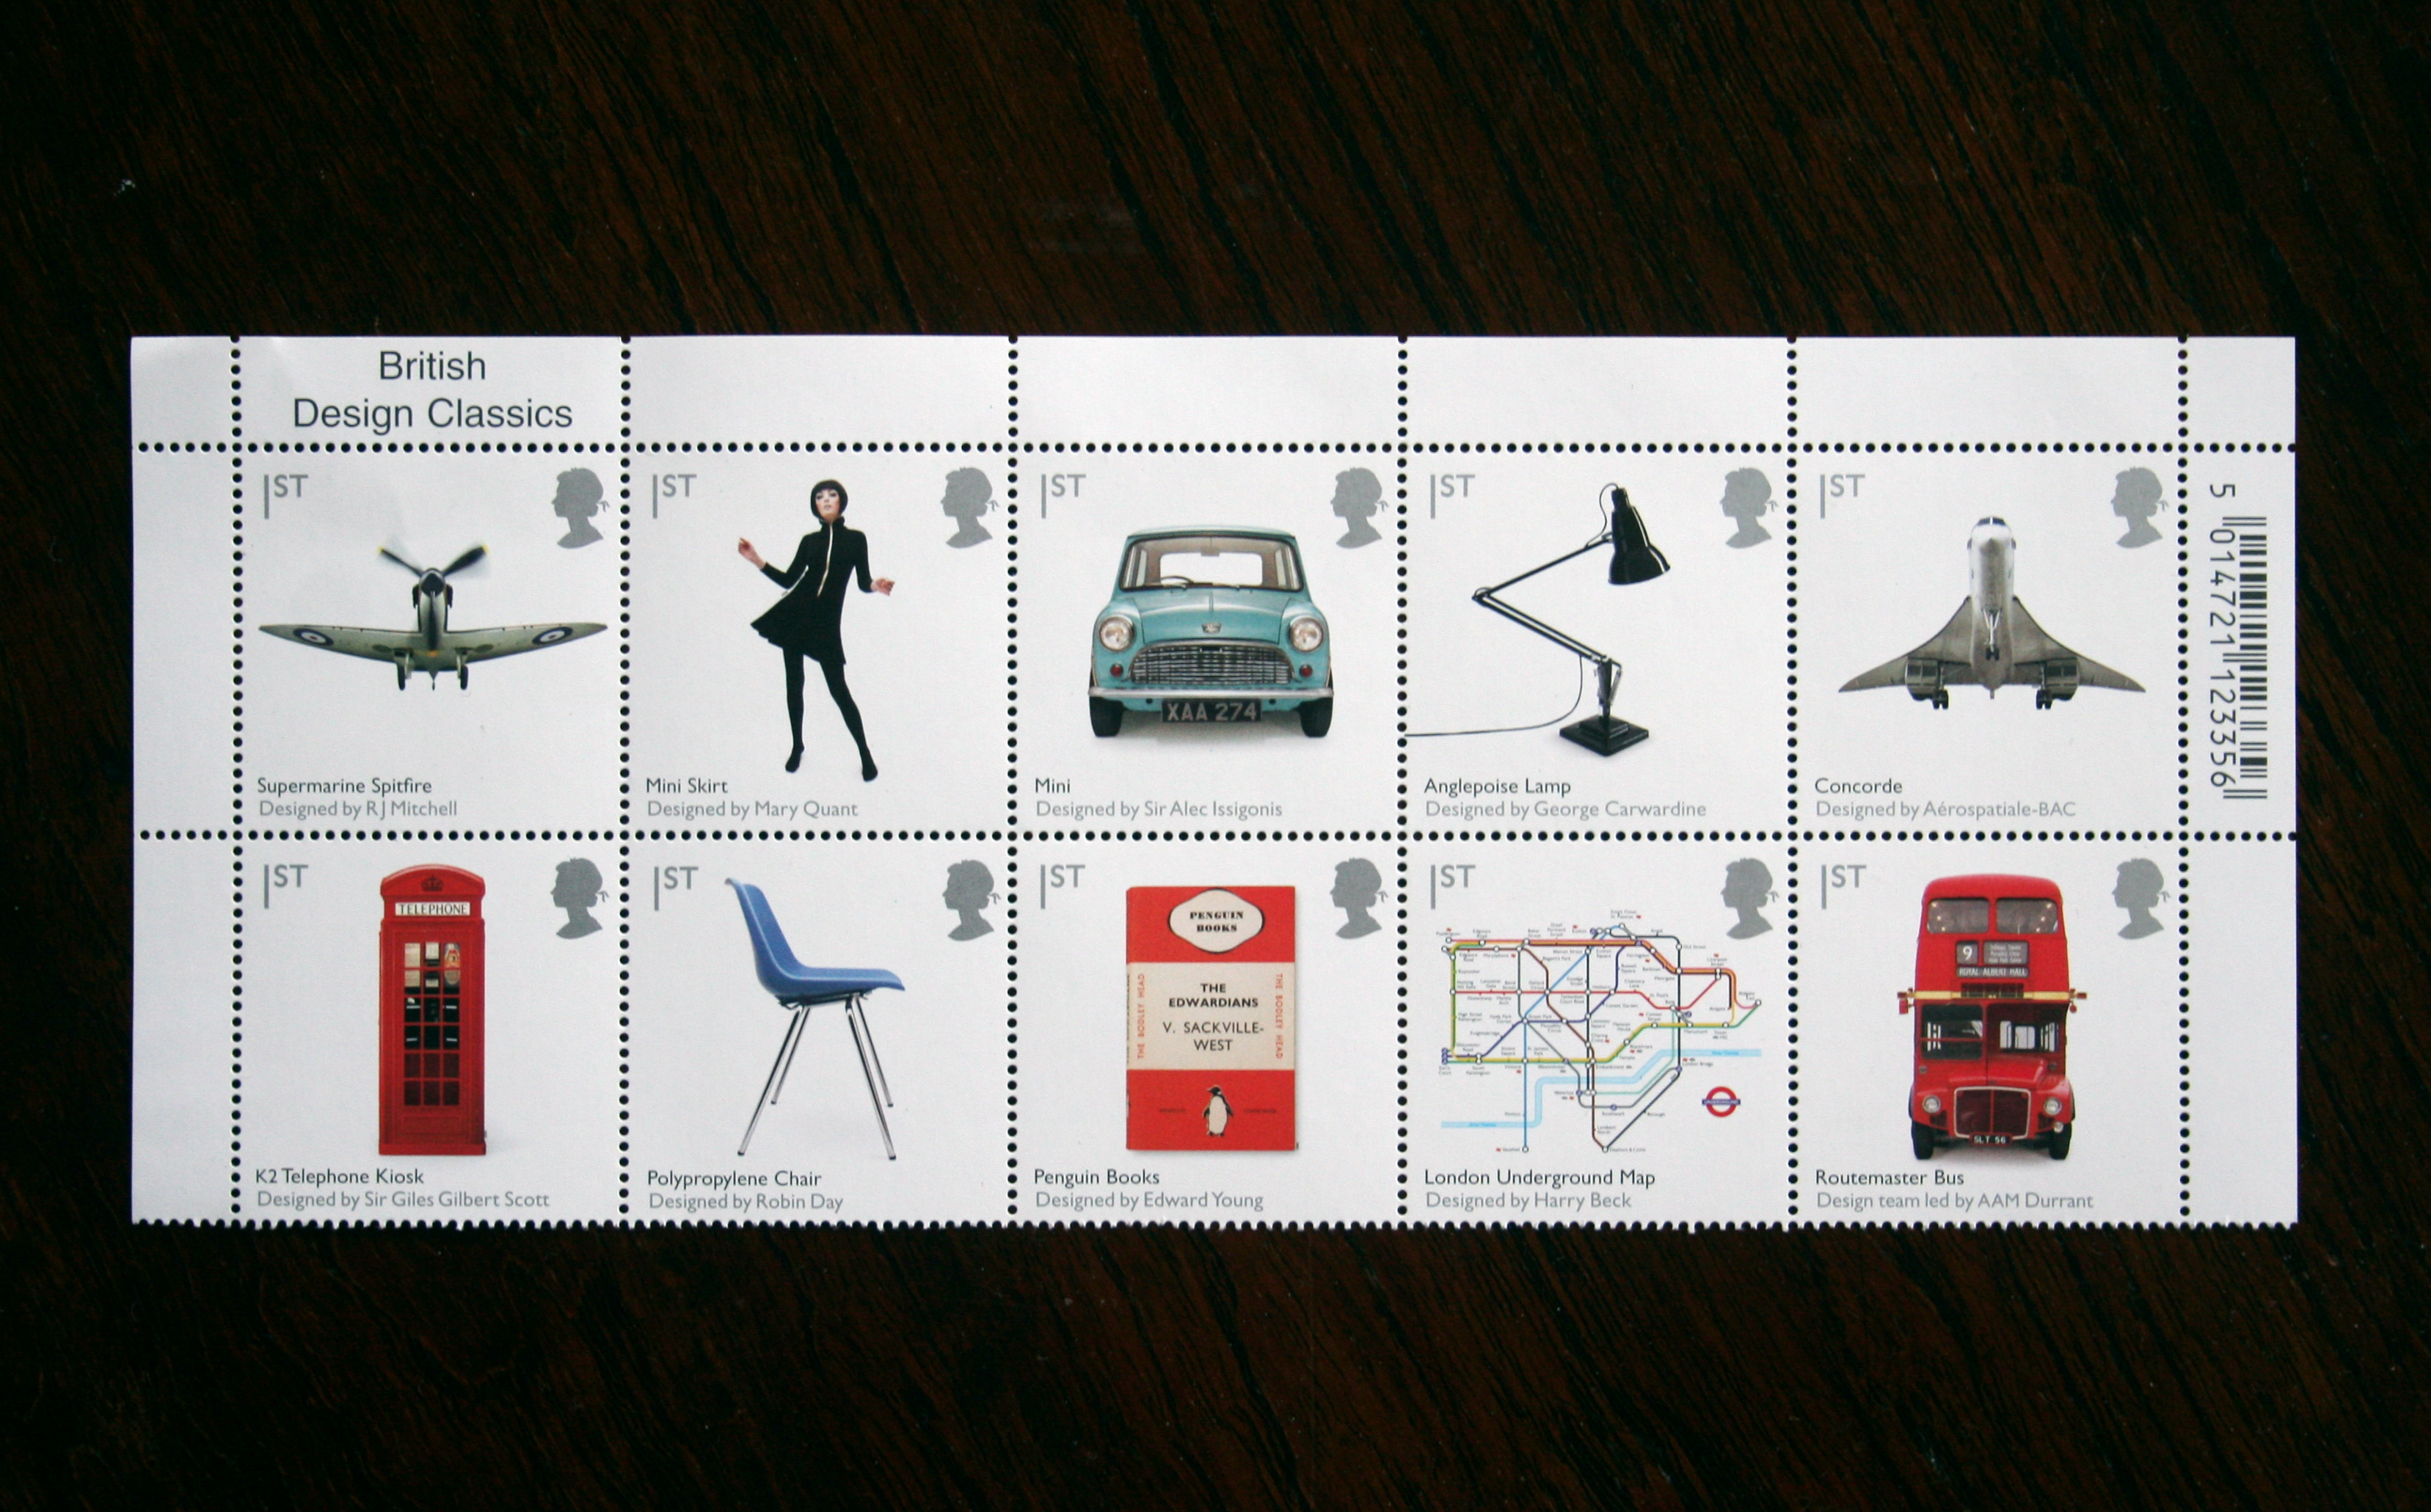 'British Design Classics' Stamps